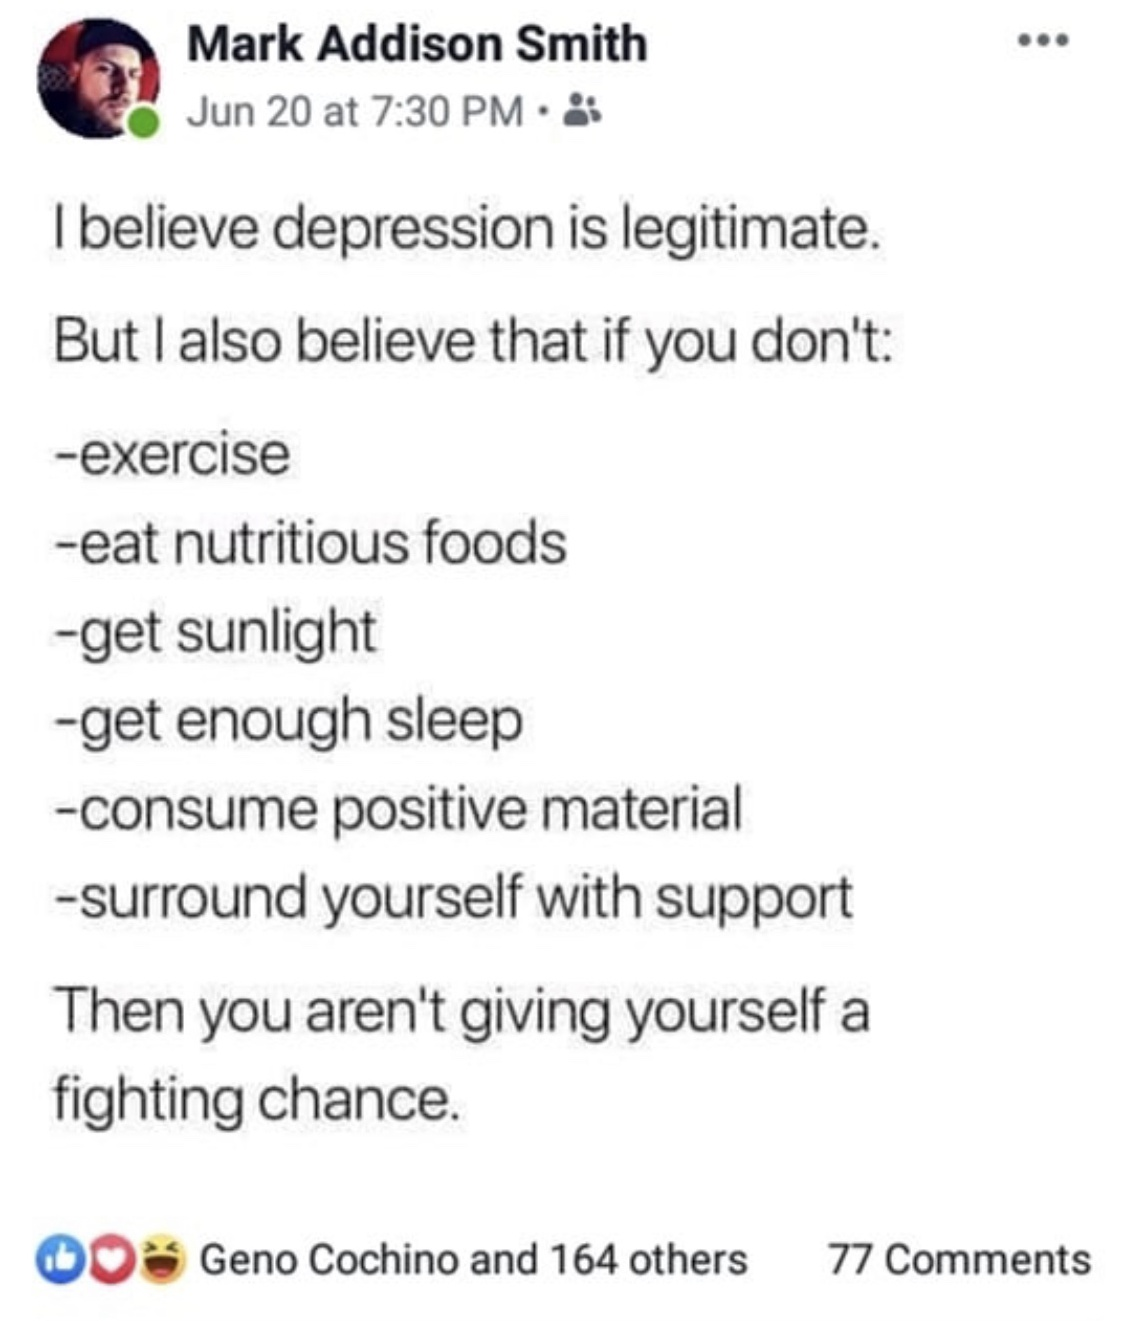 [Image] Give yourself a fighting chance